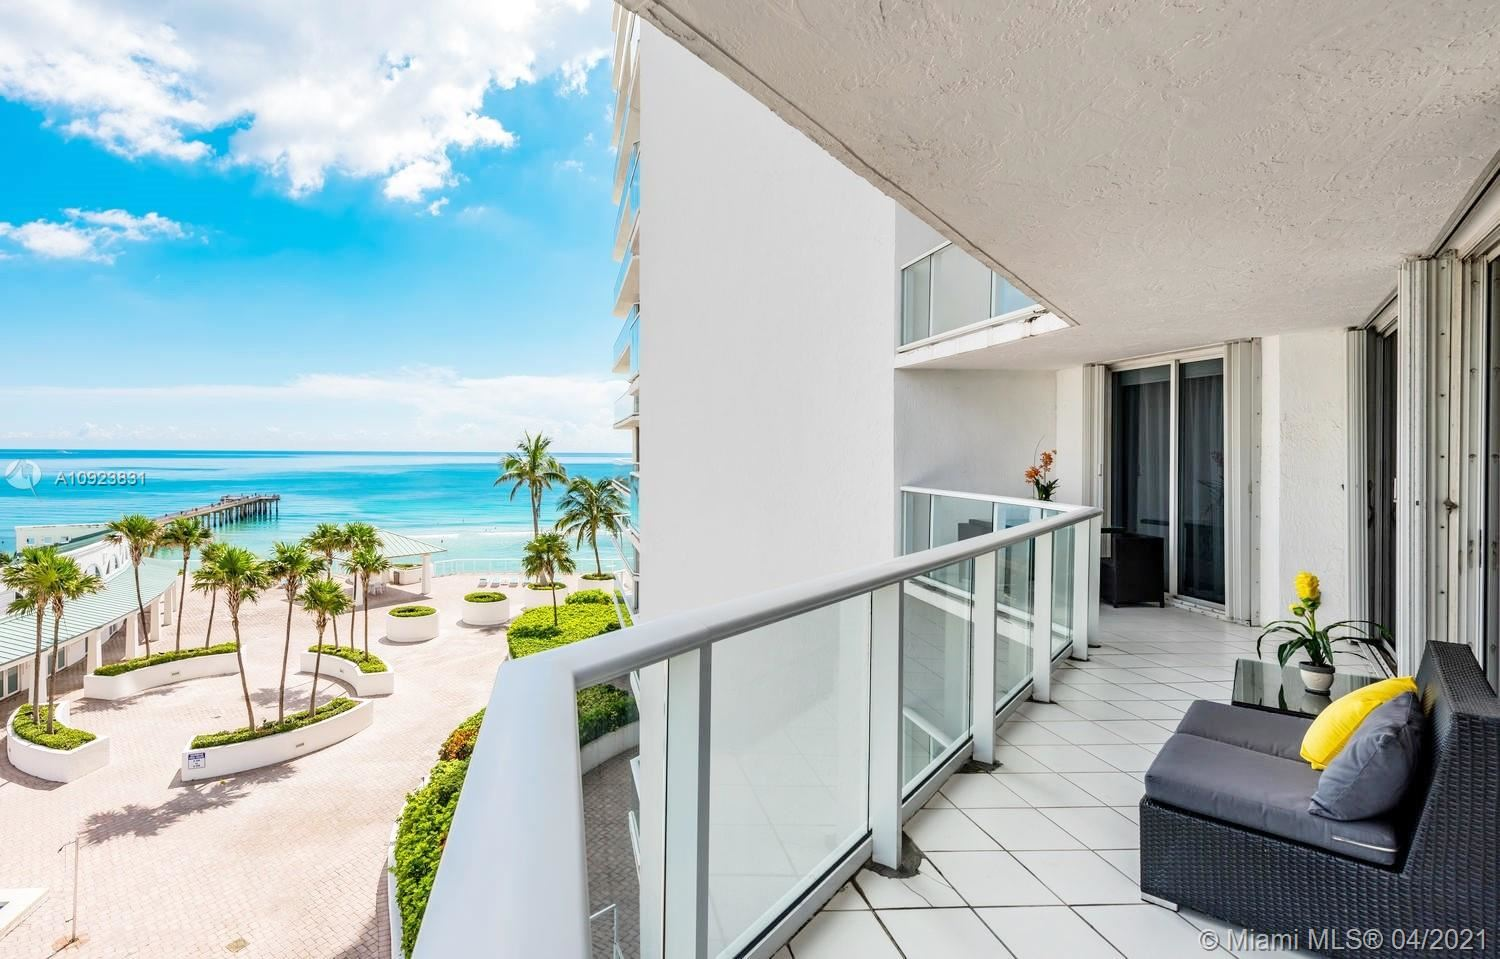 16485 Collins Ave #734, Sunny Isles, FL 33160 - #: A10923831